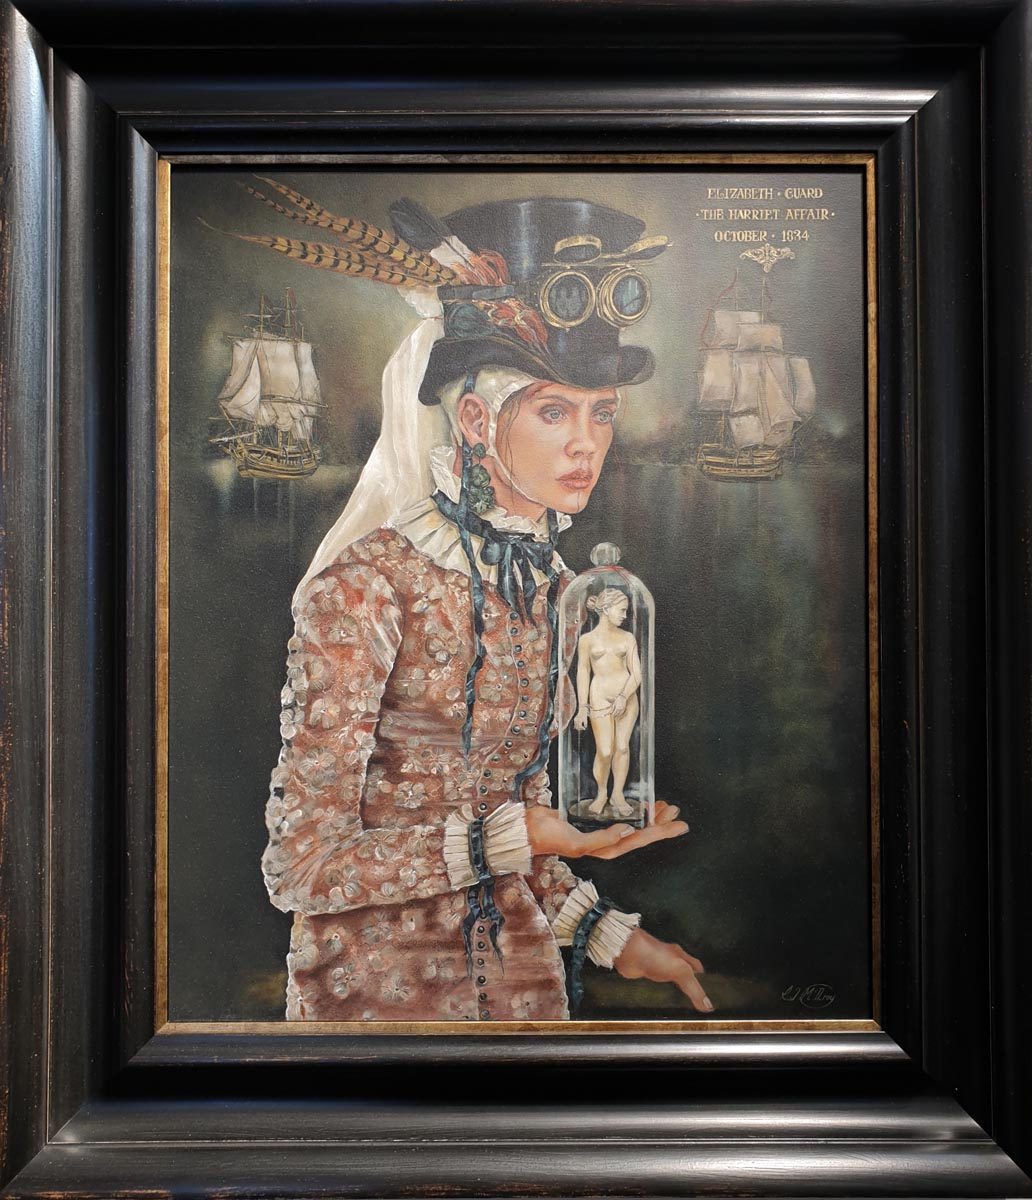 Rhonye McIlroy - The Harriet Affair April 1834 at Windsor Gallery-  modern painting contemporary and fine art